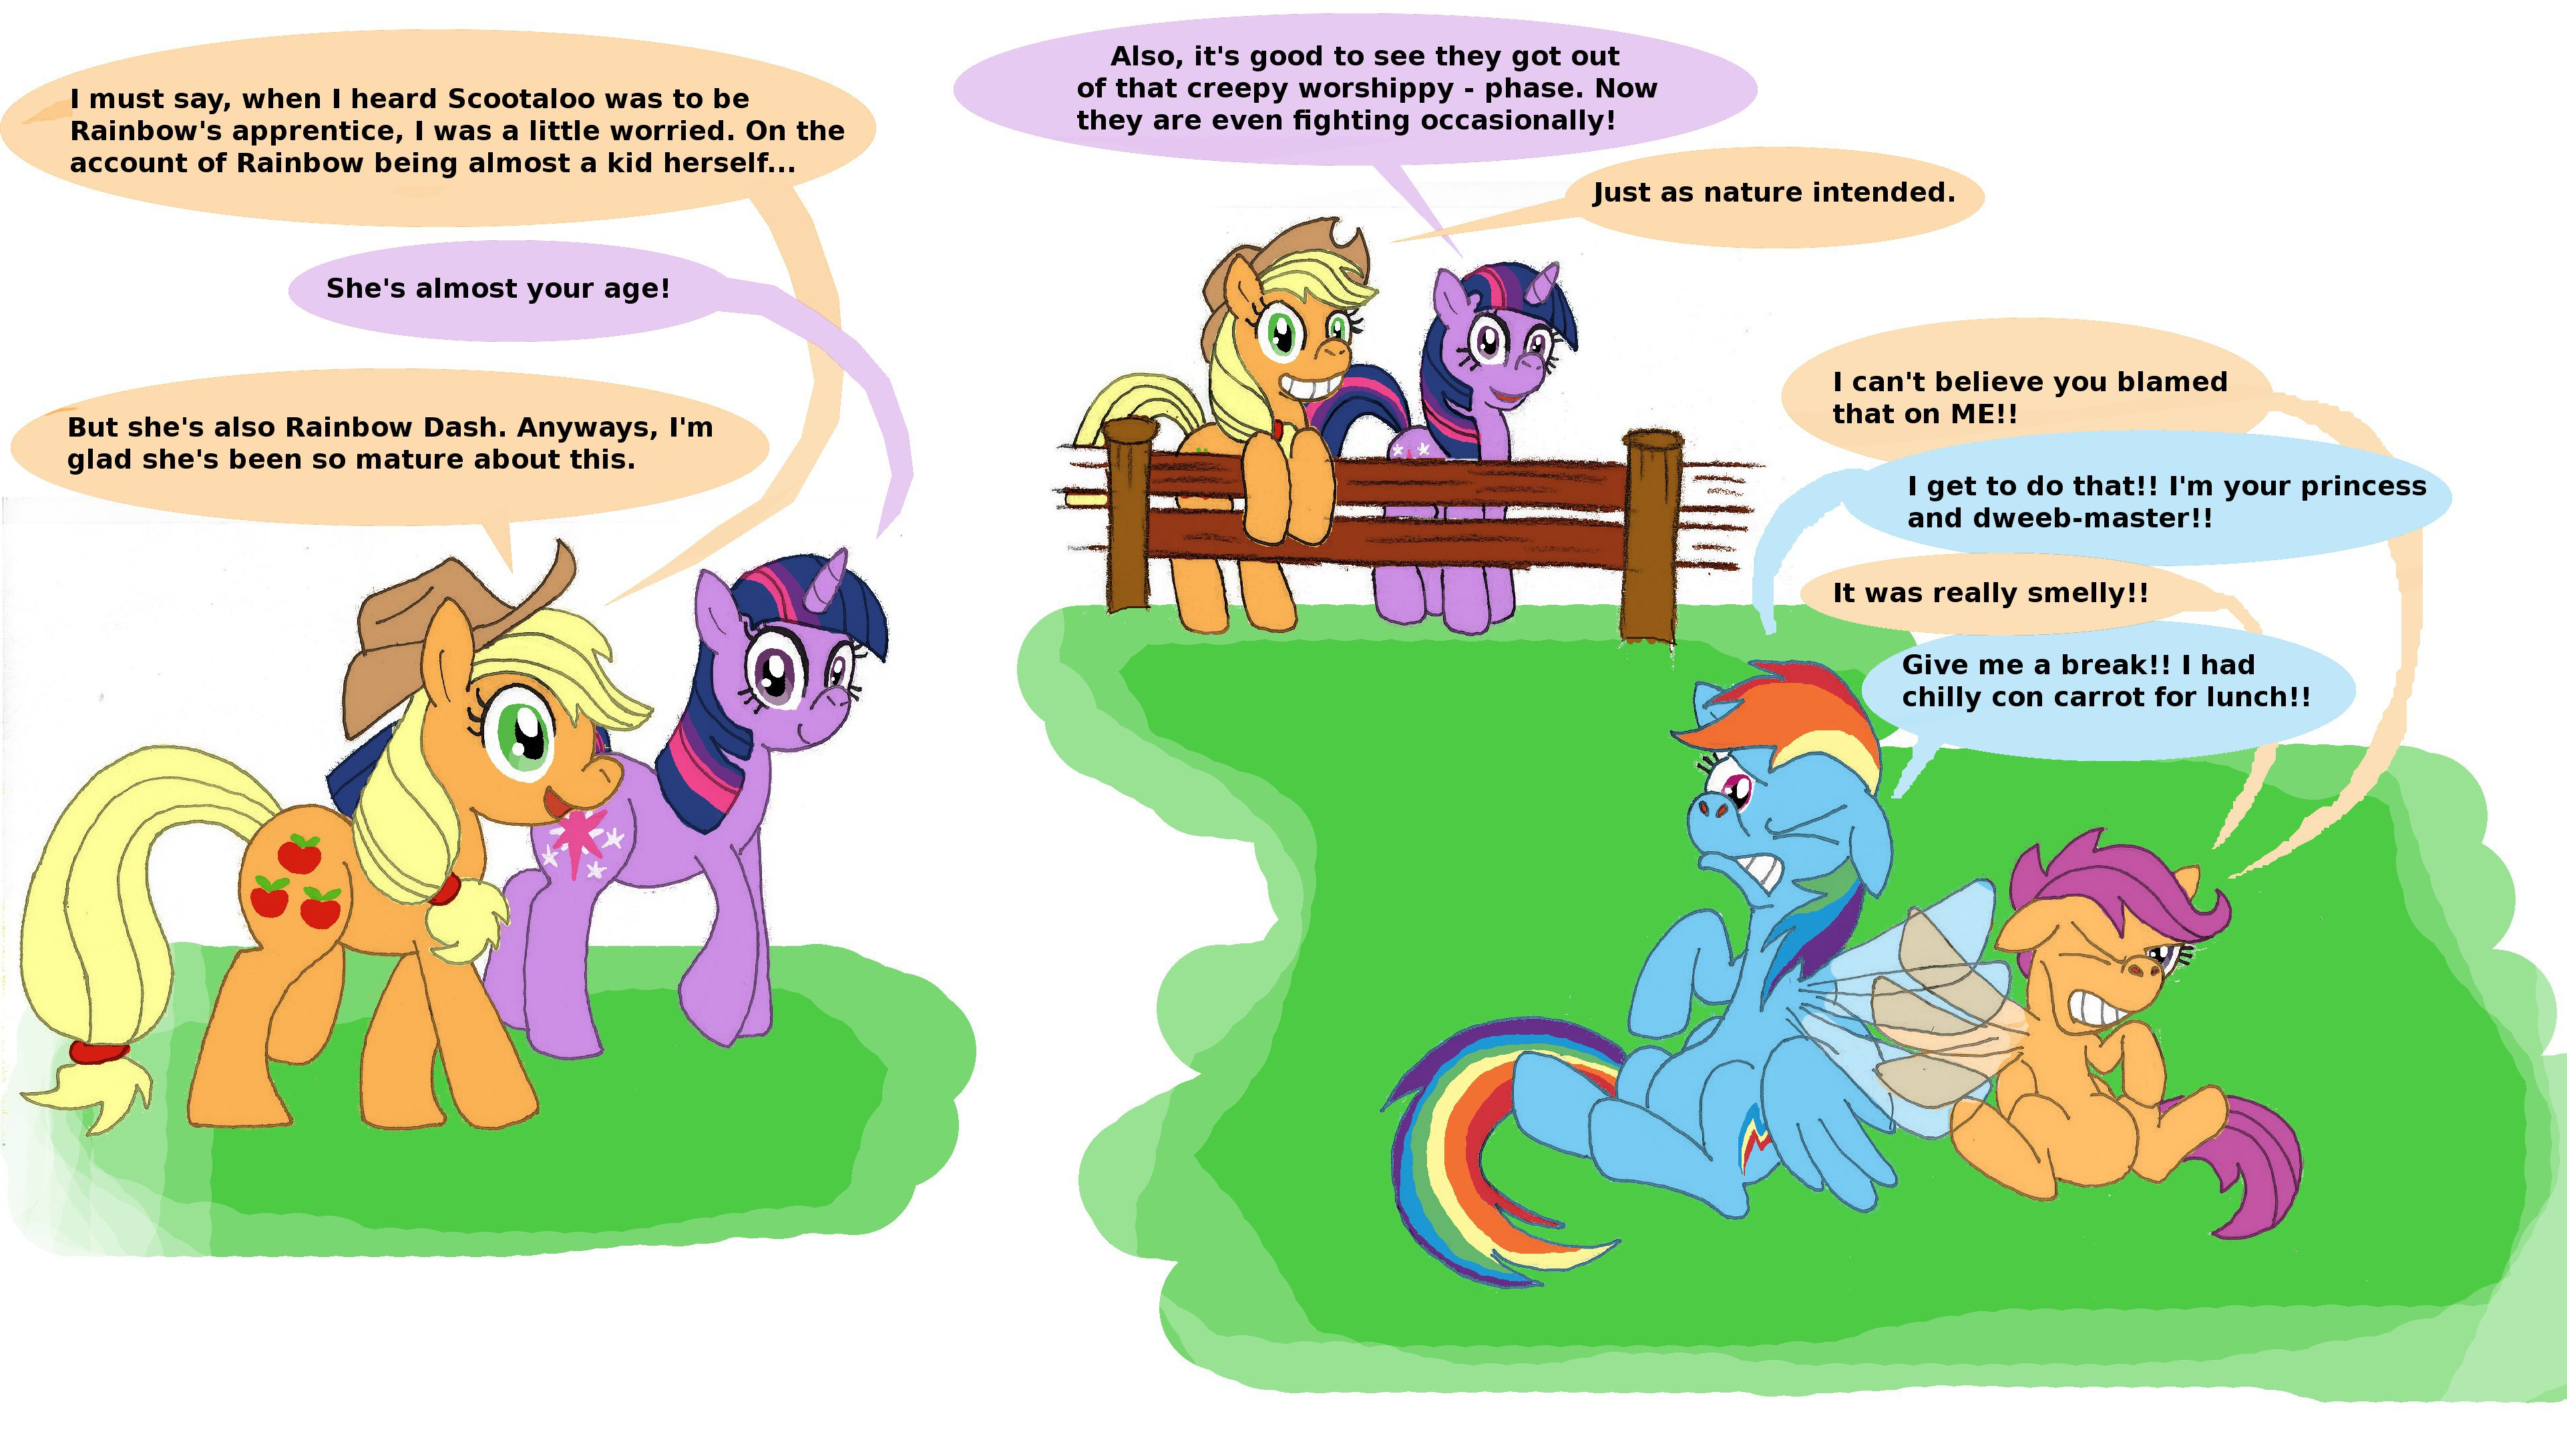 I Must Say When I Heard Scootaloo Was To Be Rainbows Apprentice I Was